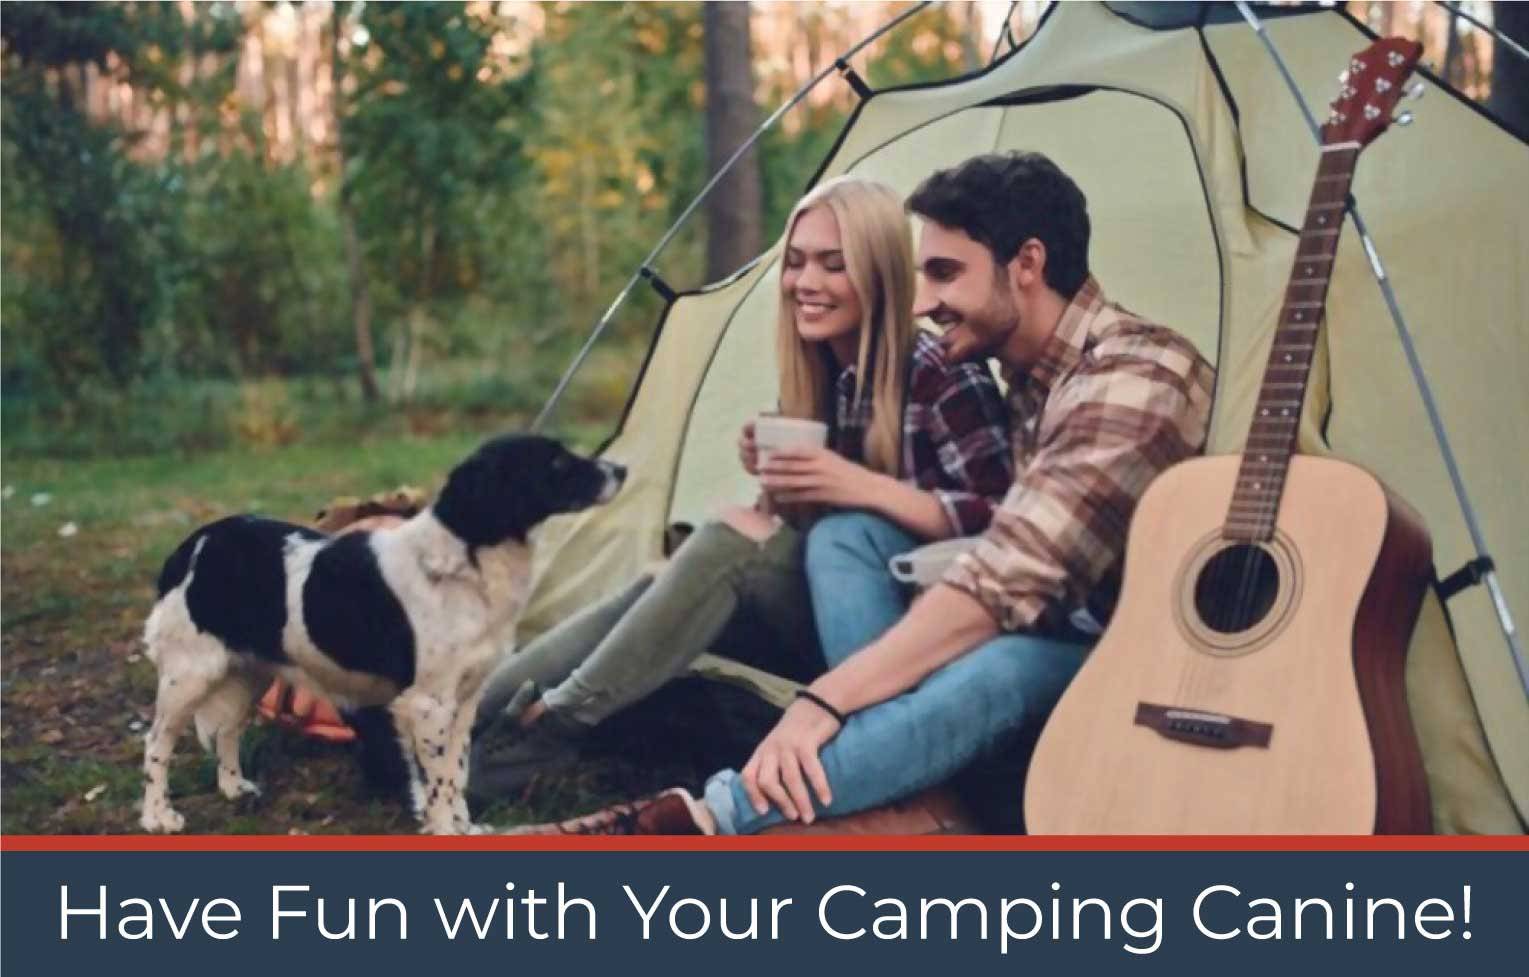 Have Fun with Your Camping Canine